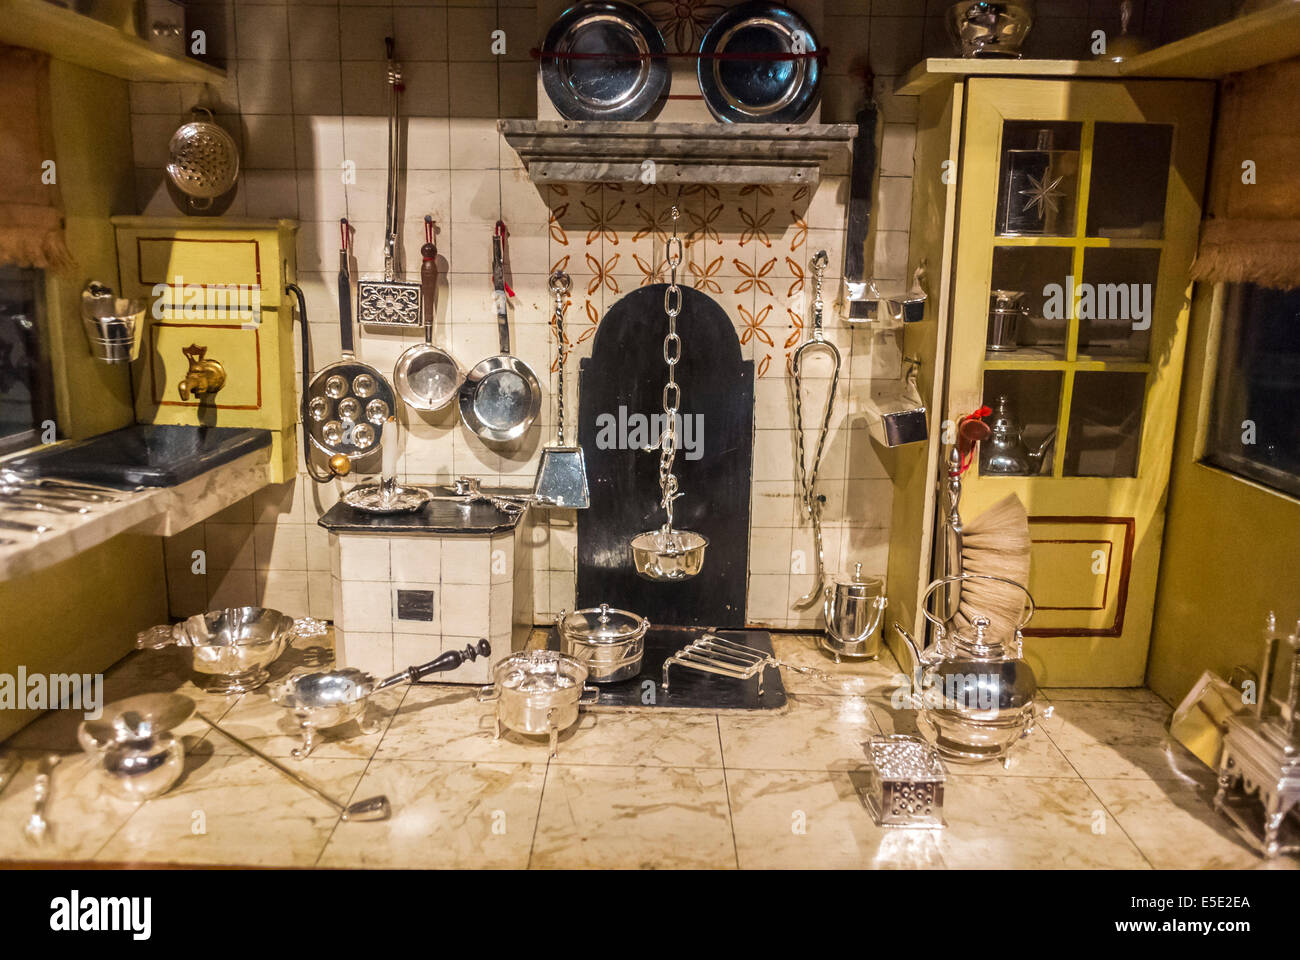 Antique Dolls House Stock Photos  Antique Dolls House Stock - Dolls house interior